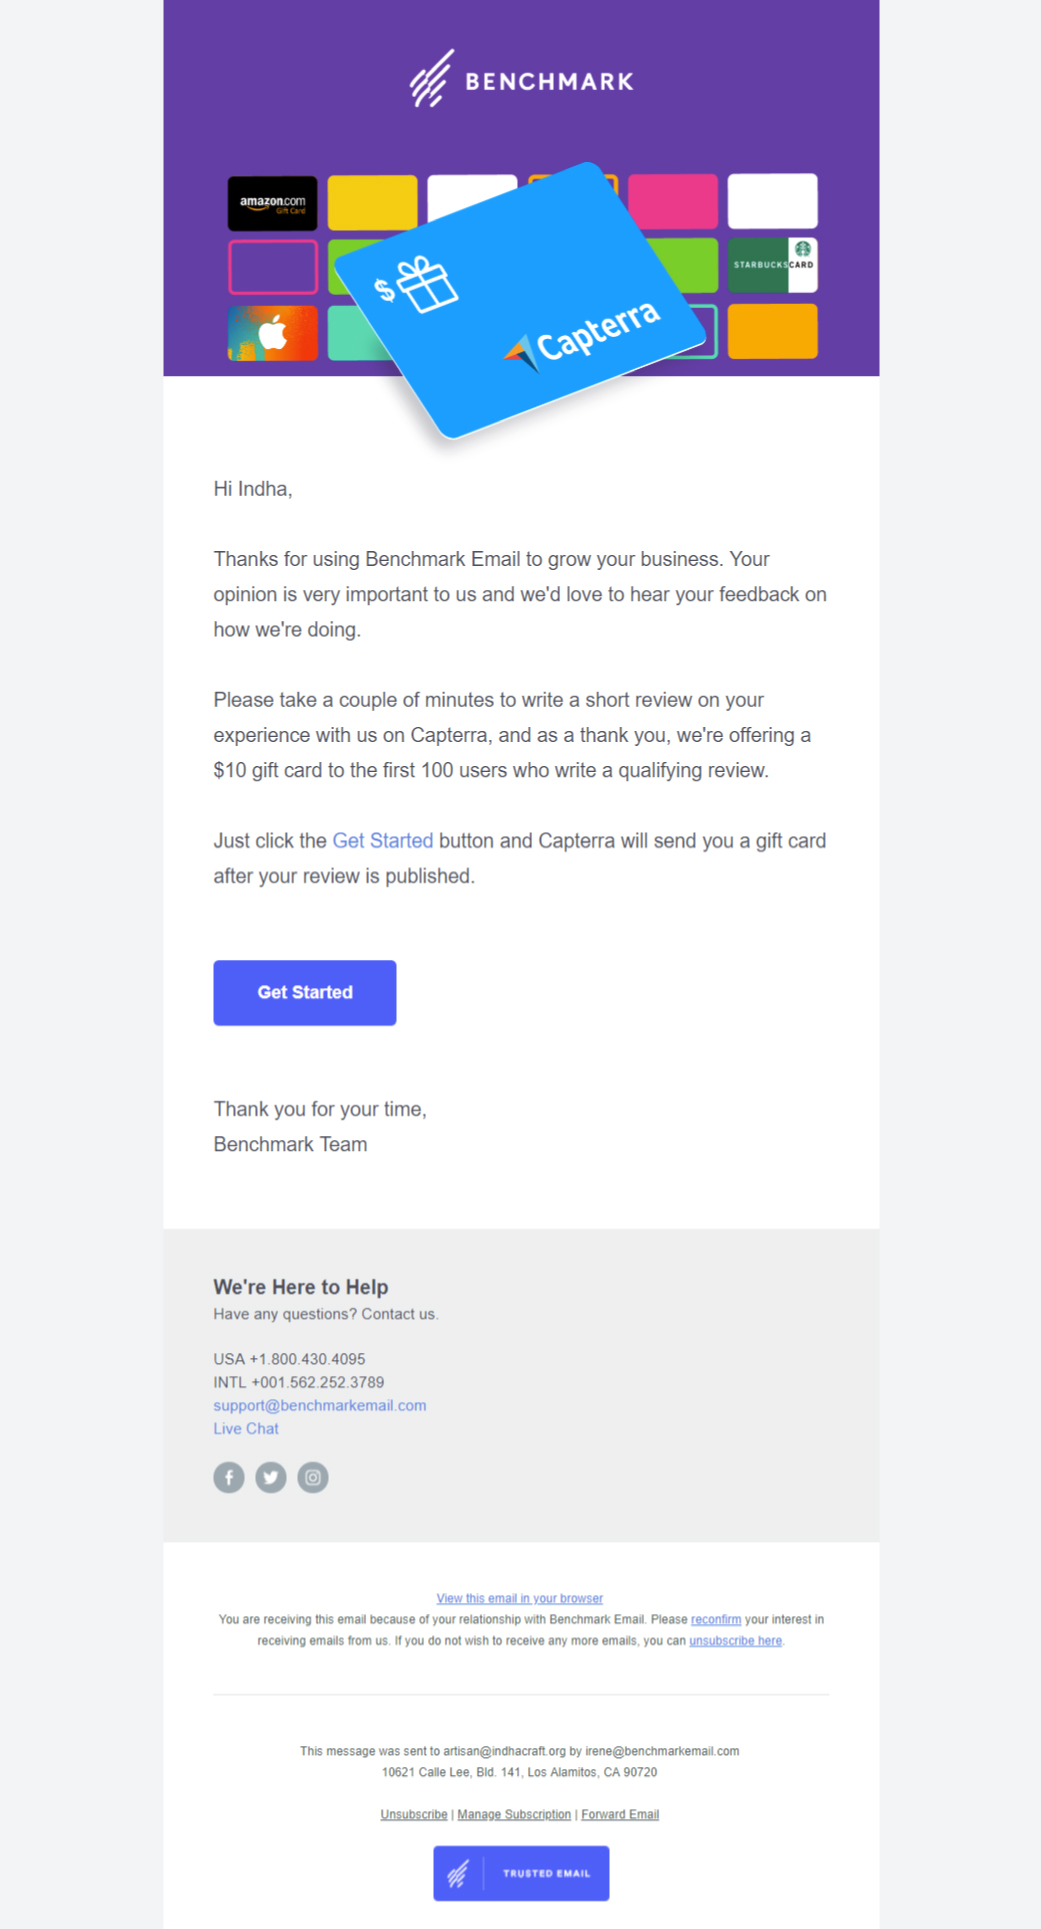 Benchmark Email's Review Request email